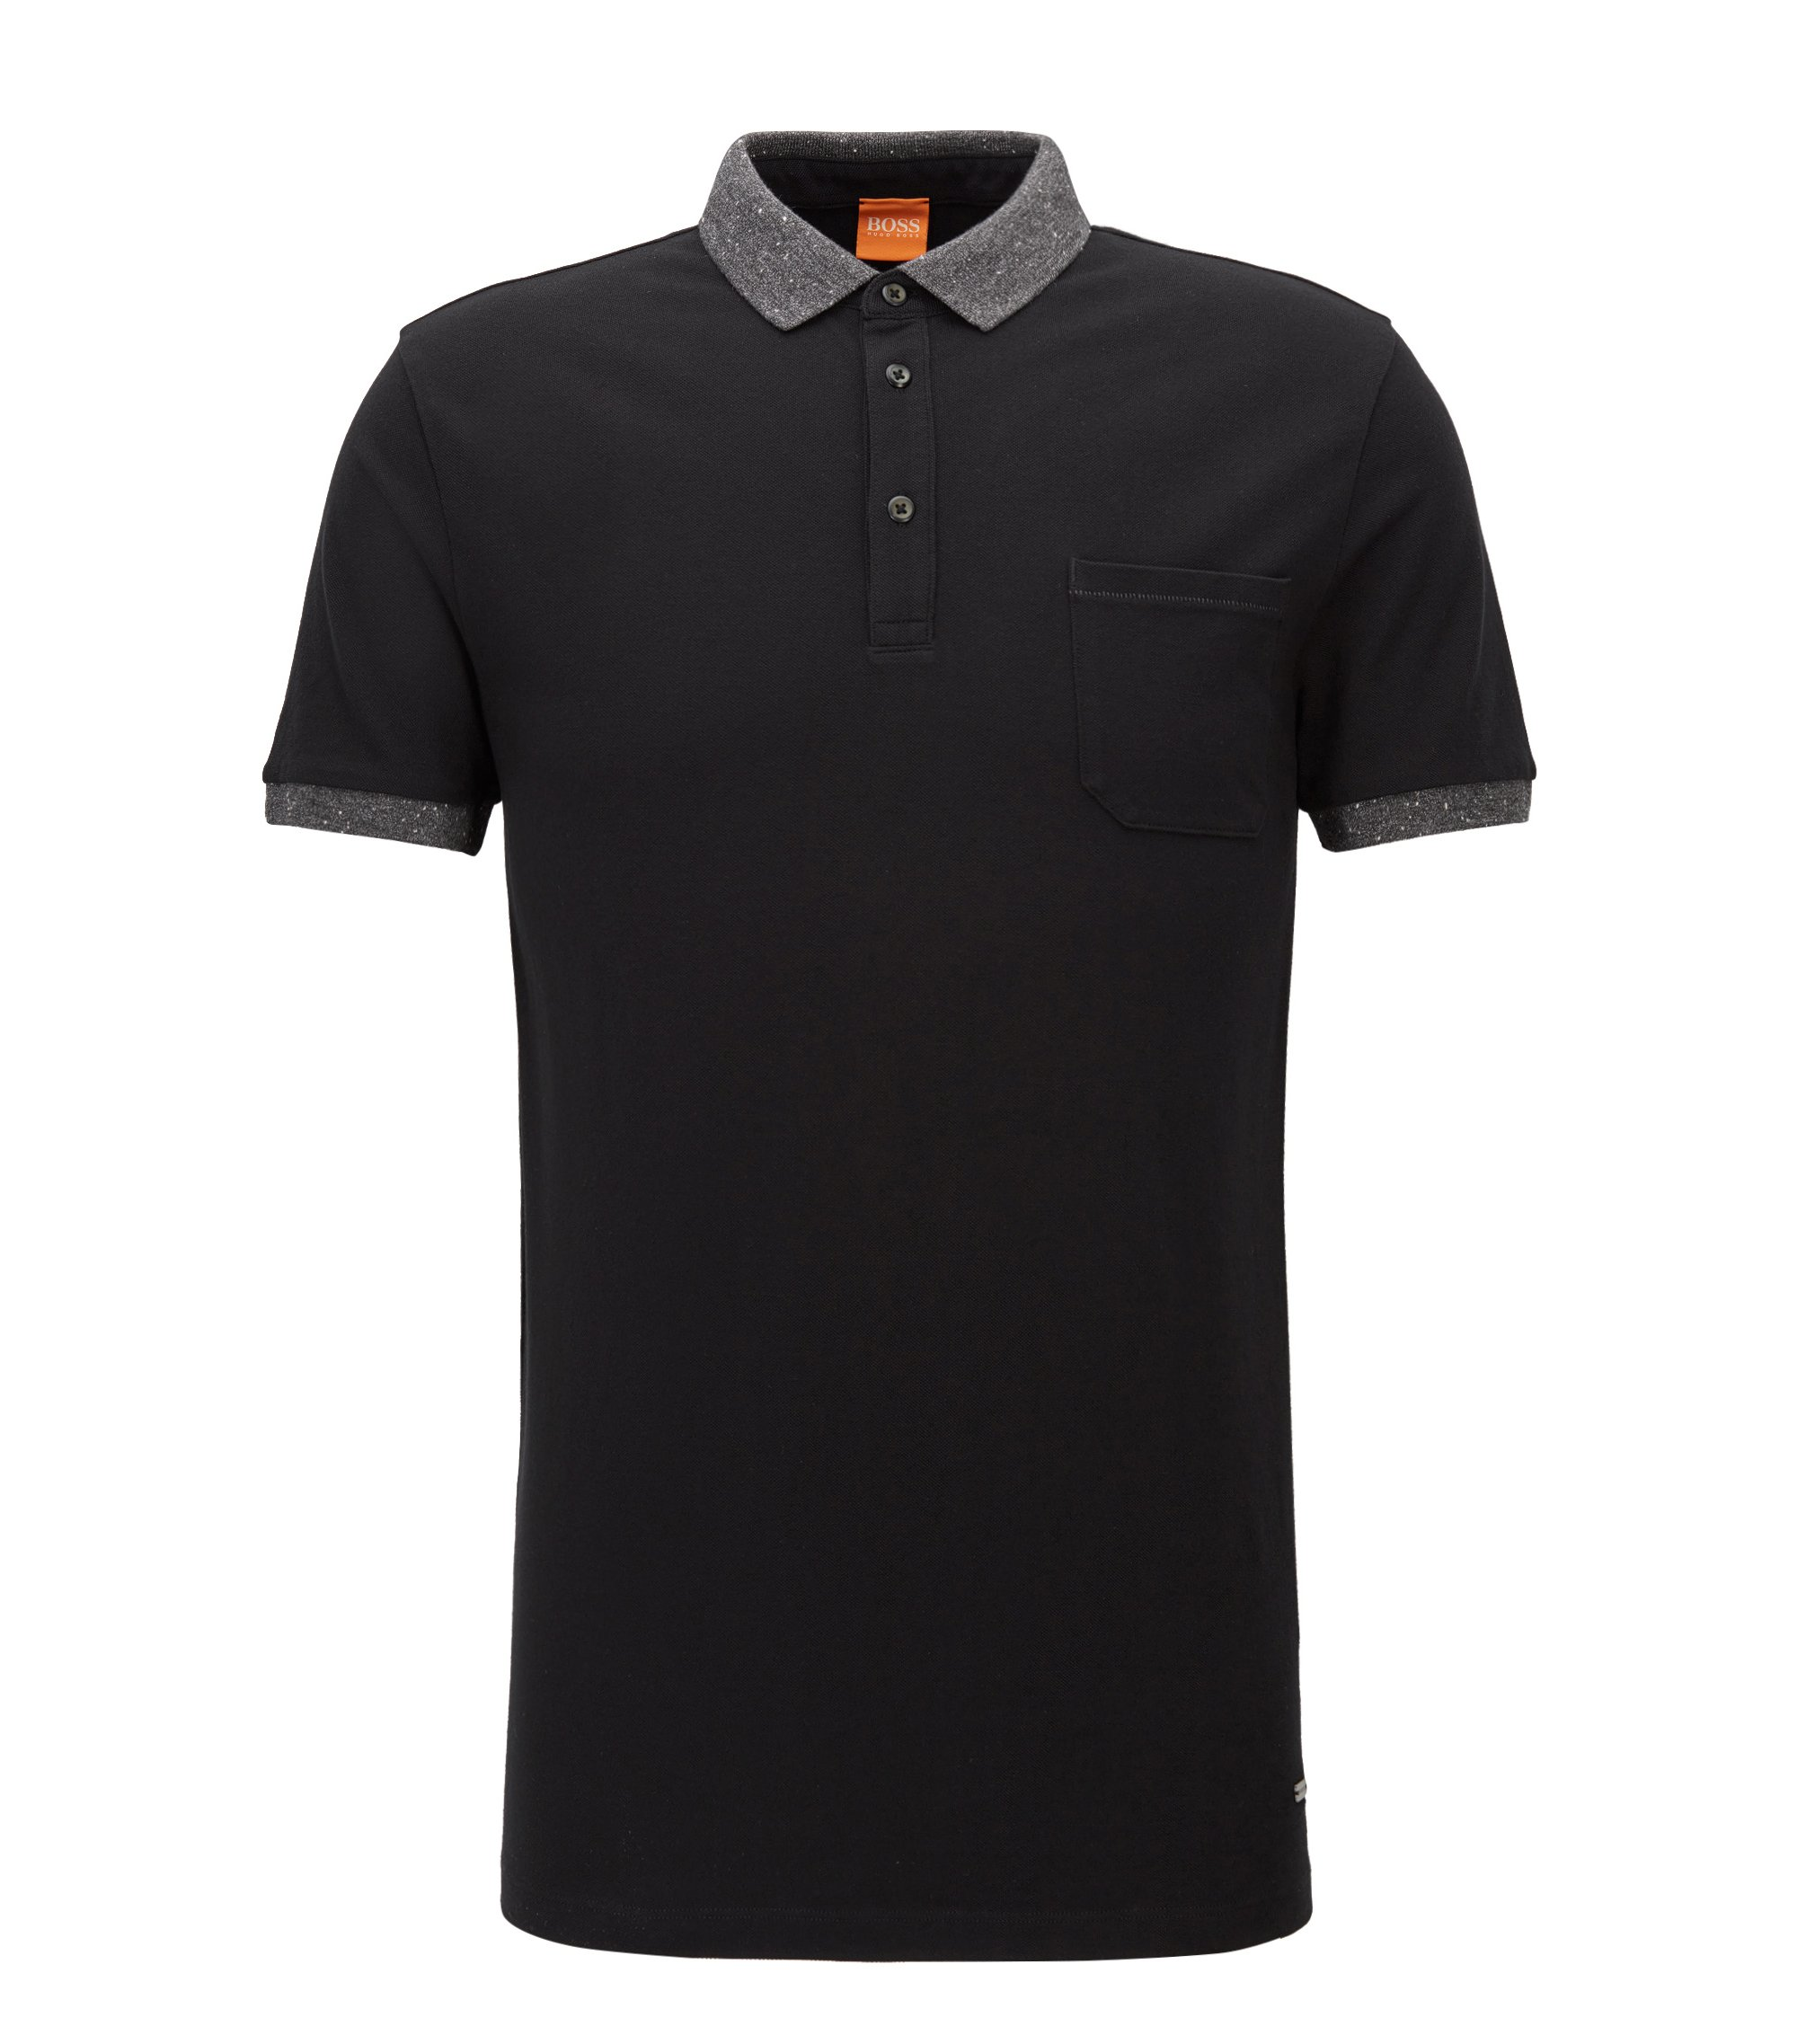 Regular Fit, Piqué Cotton Polo Shirt | Previously, Black